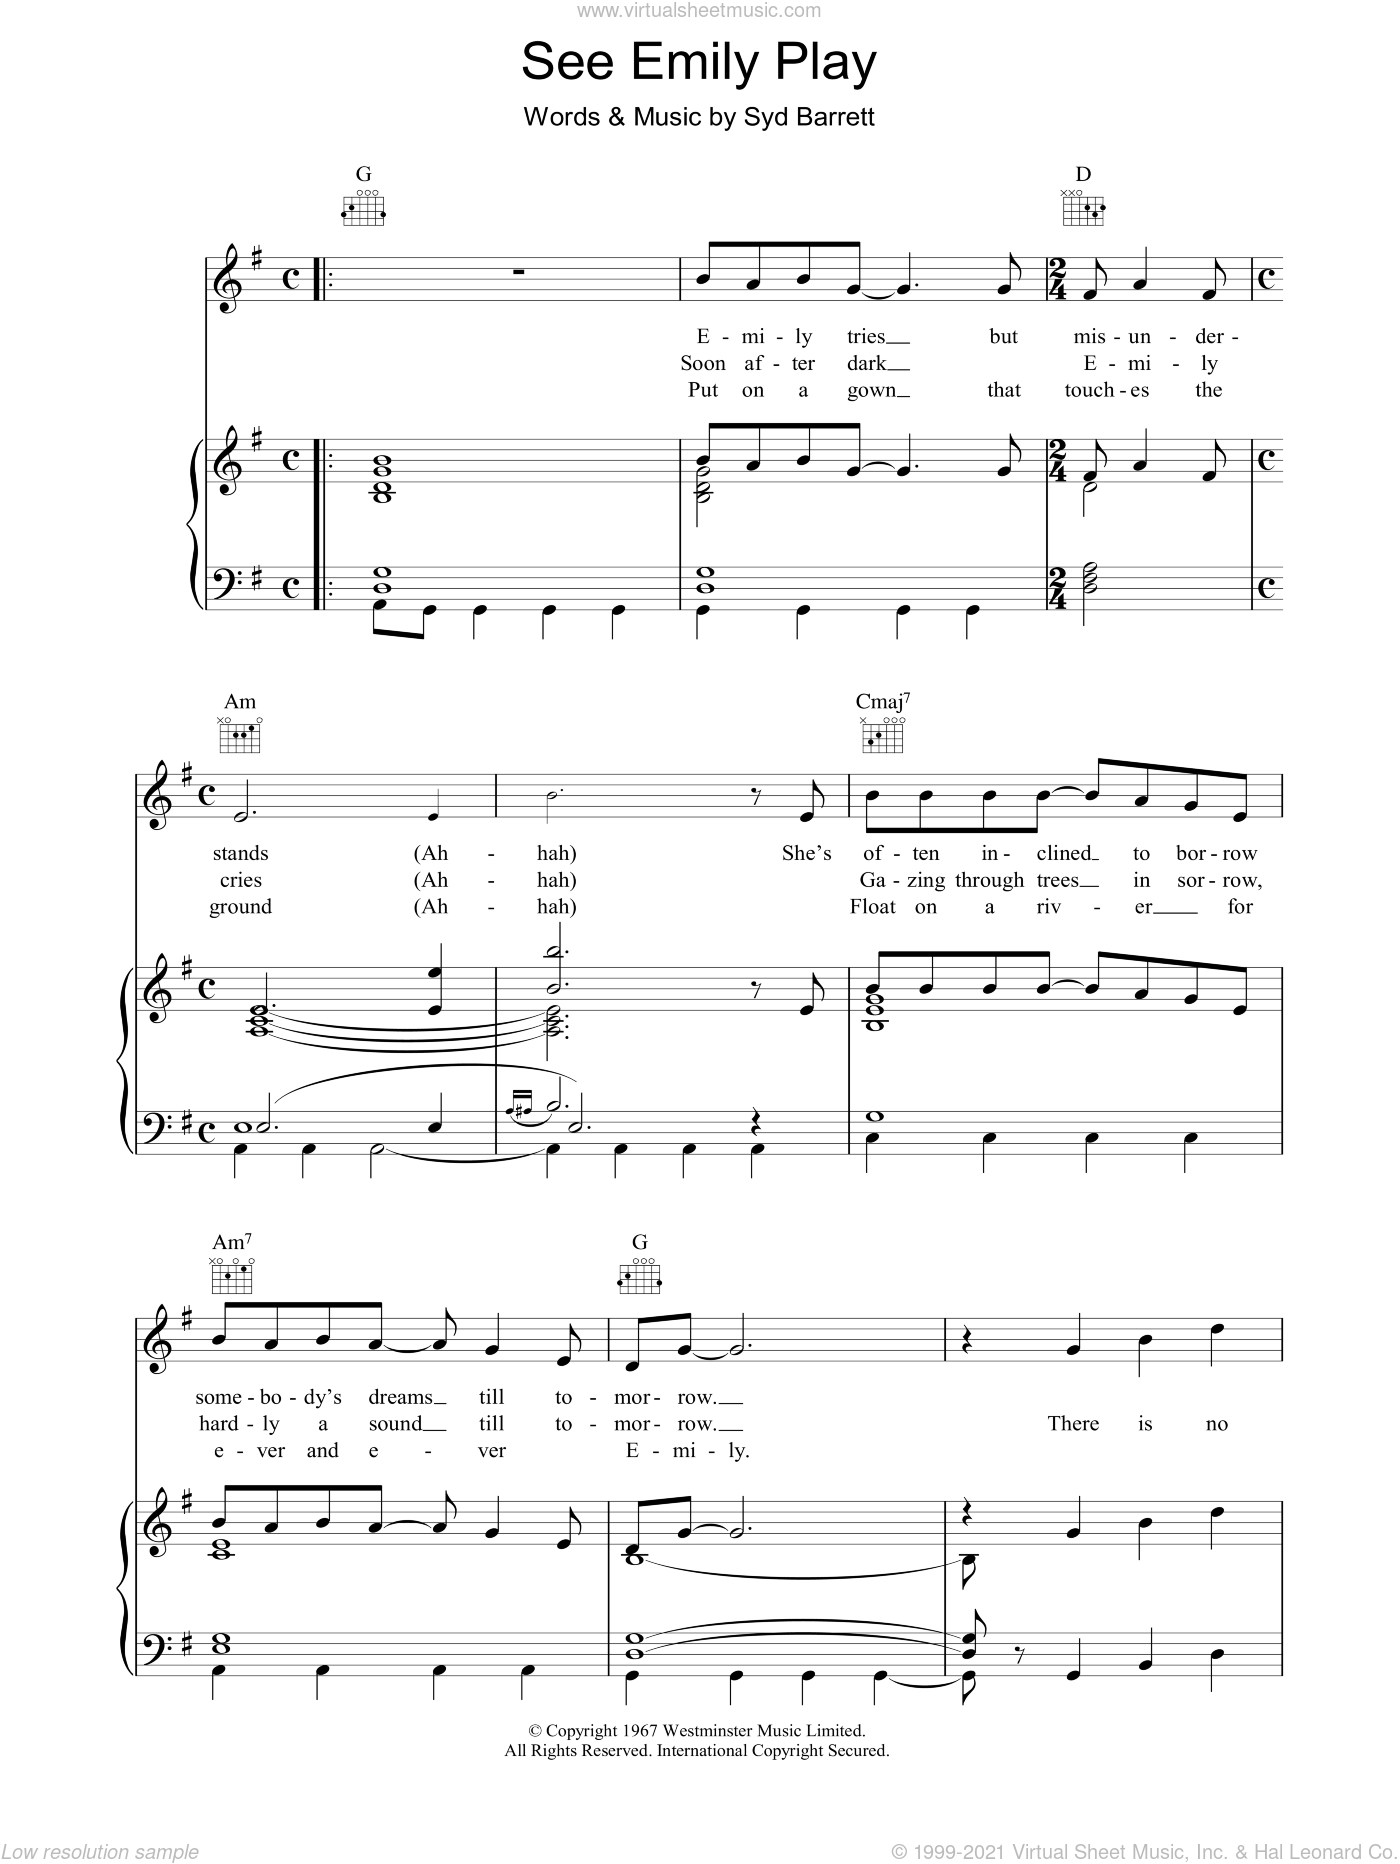 See Emily Play sheet music for voice, piano or guitar by Syd Barrett